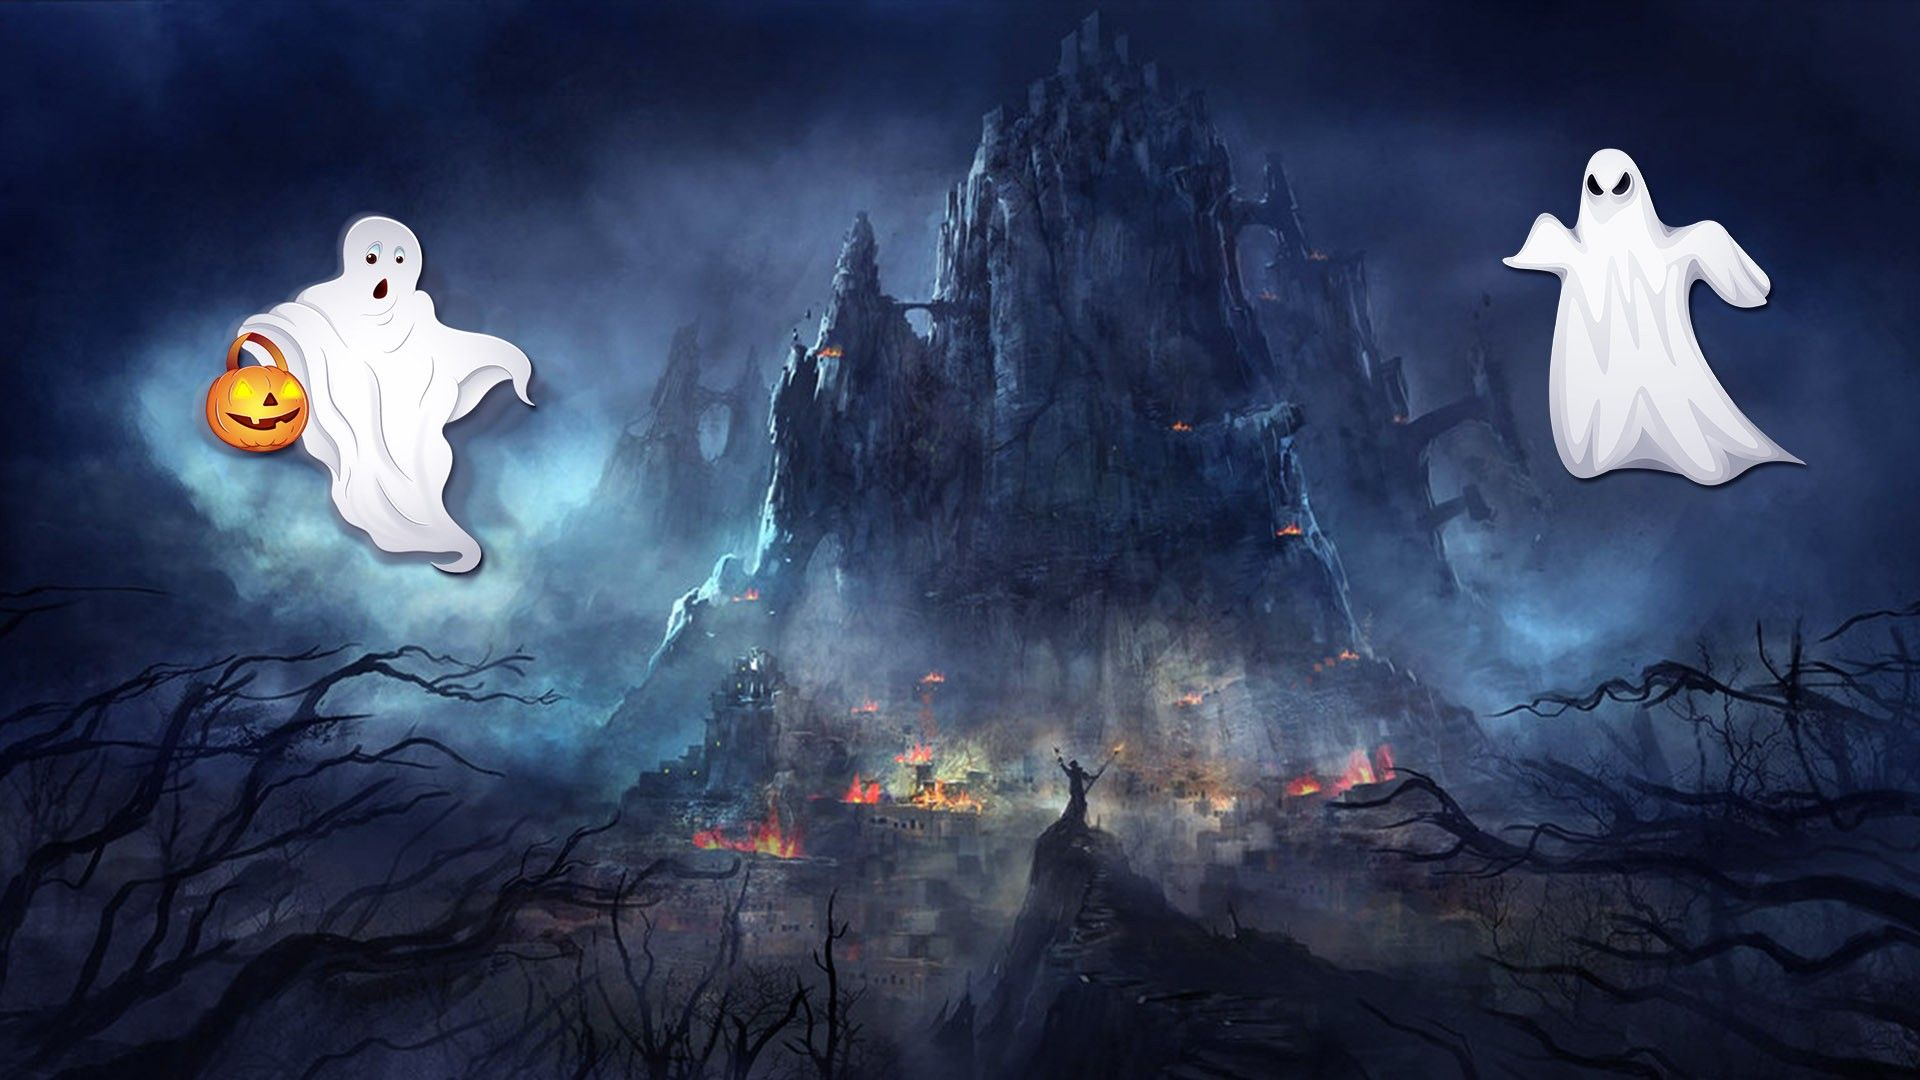 Halloween Ghost Wallpapers - Top Free Halloween Ghost Backgrounds - WallpaperAccess